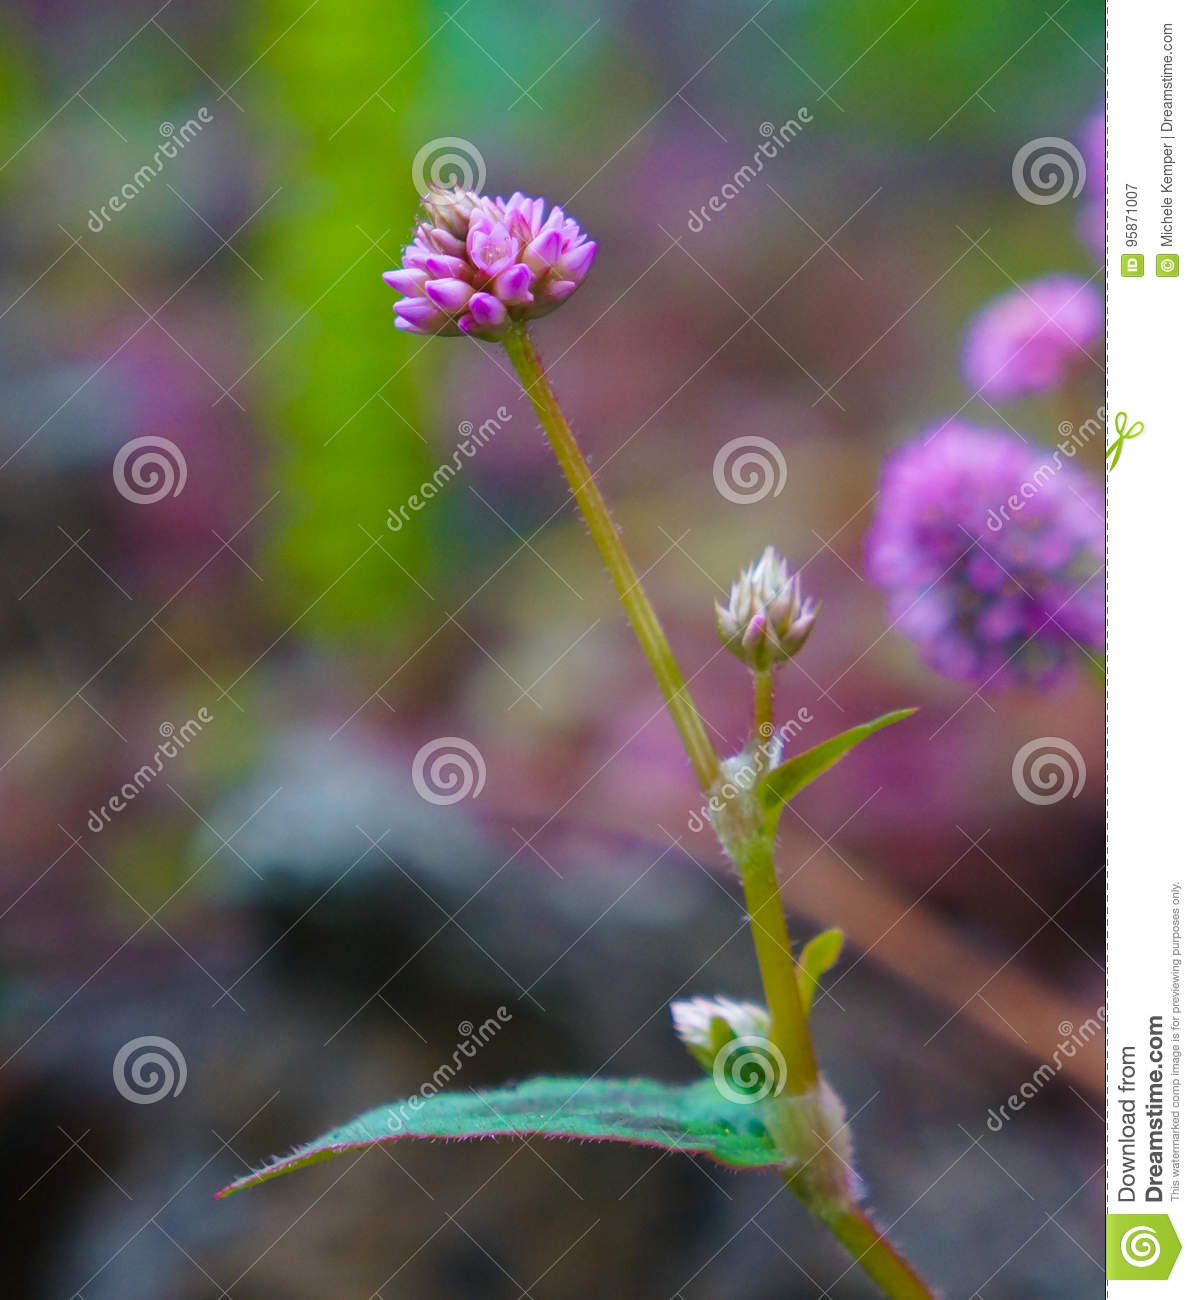 Purple Clover Flower With Tiny Buds Stock Image Image Of Pink